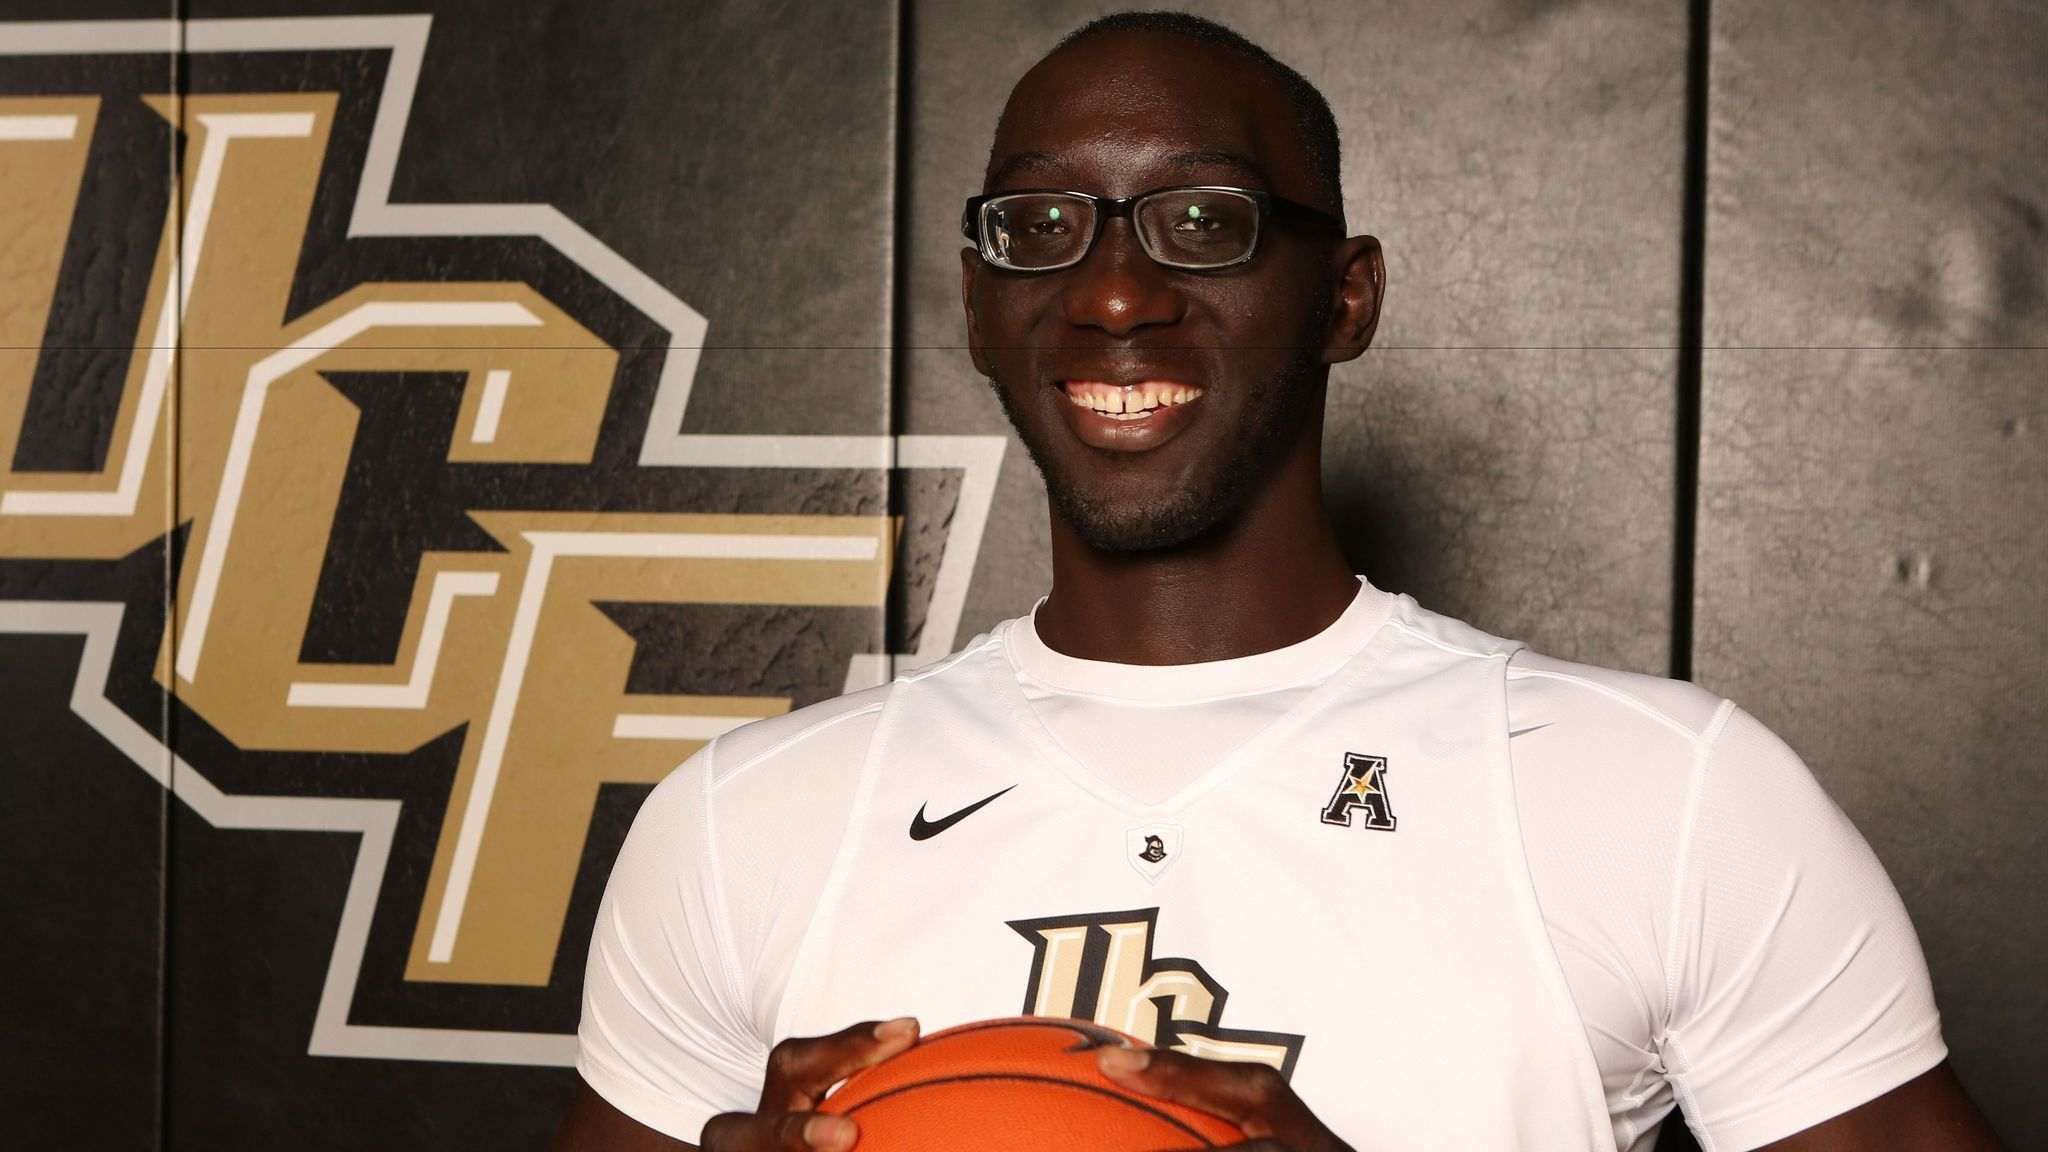 Tacko Fall To Test NBA Draft Waters With Option To Return